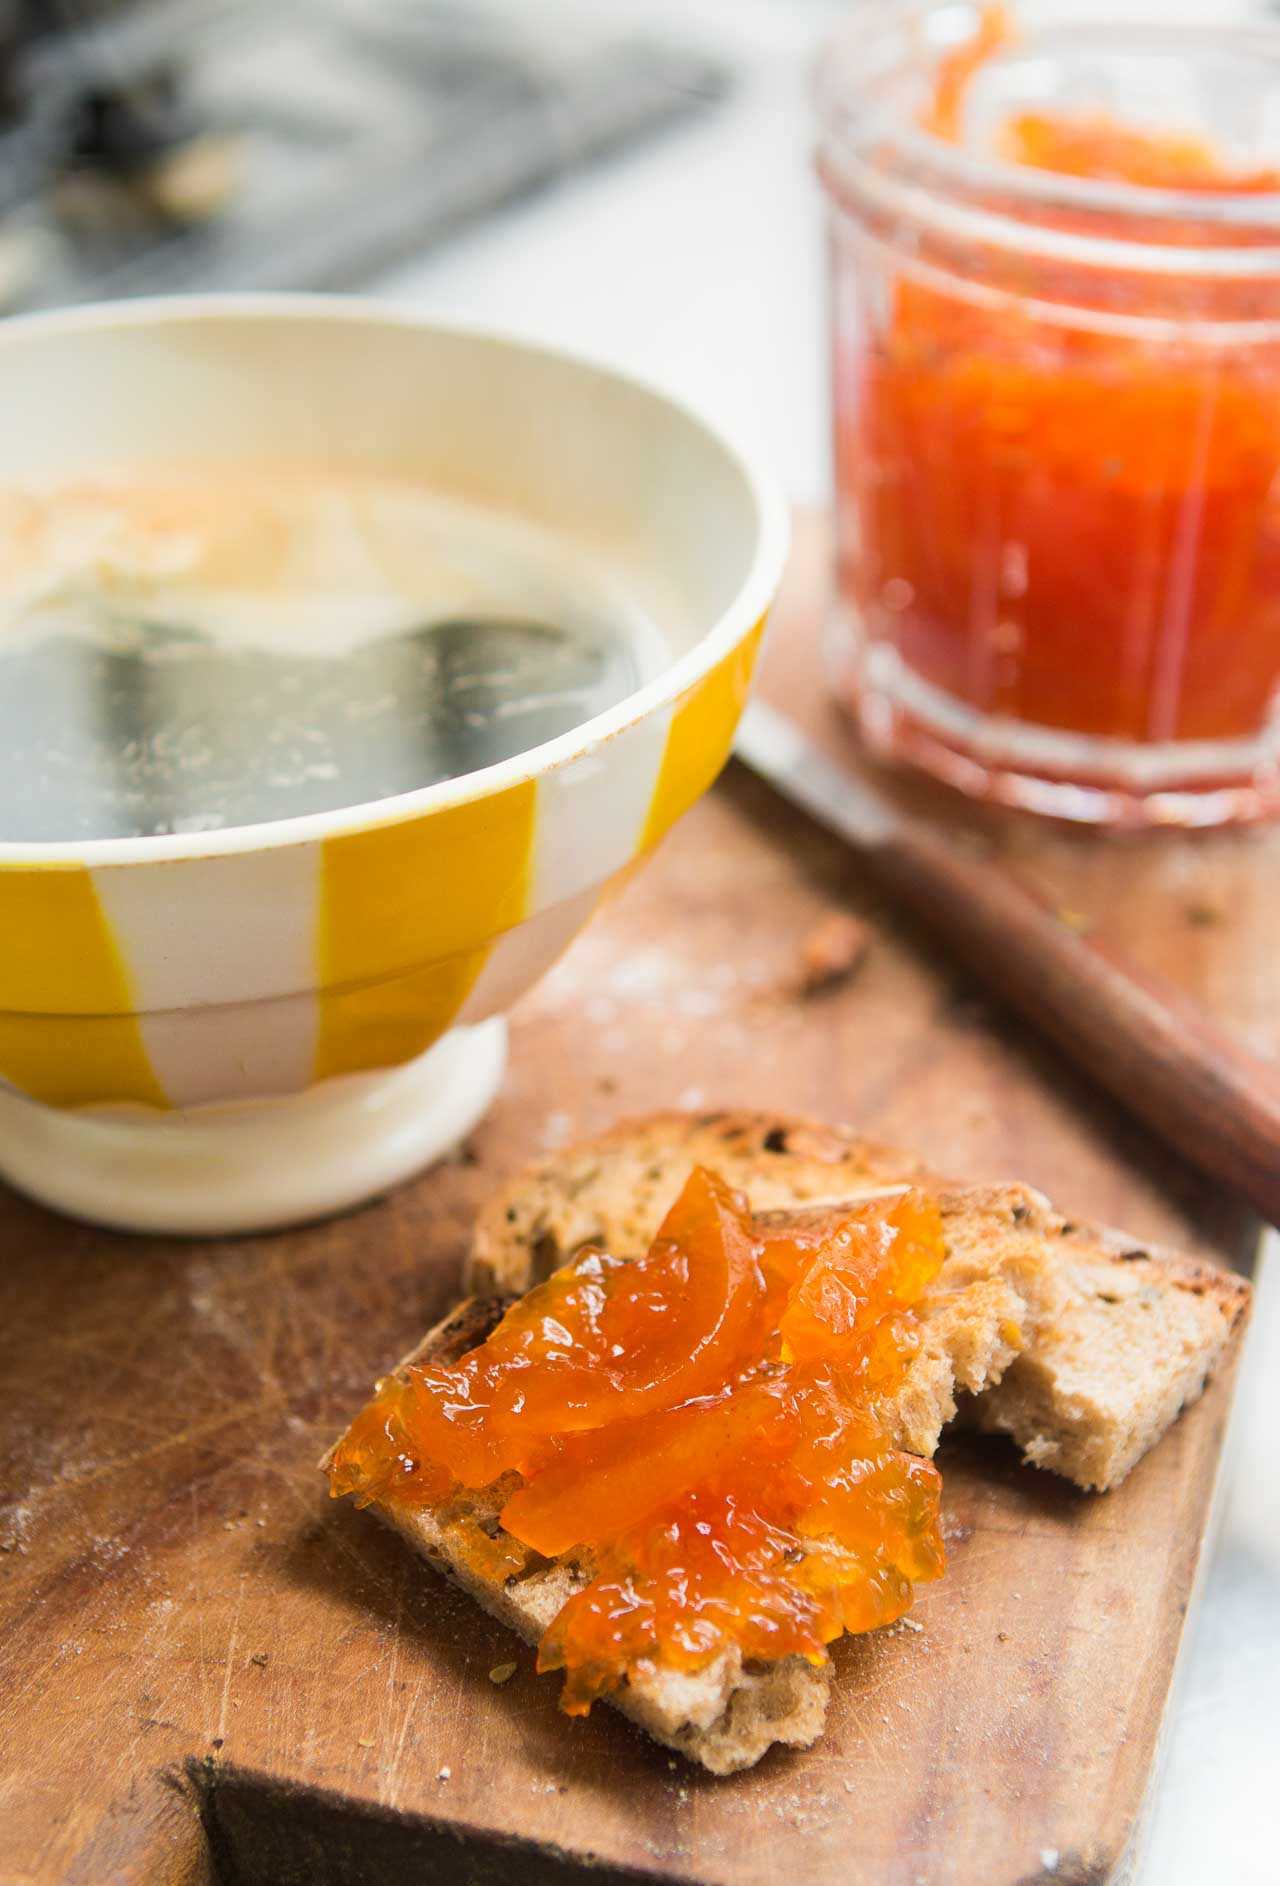 A delicious tart, tangy marmalade made with fresh pink grapefruits!